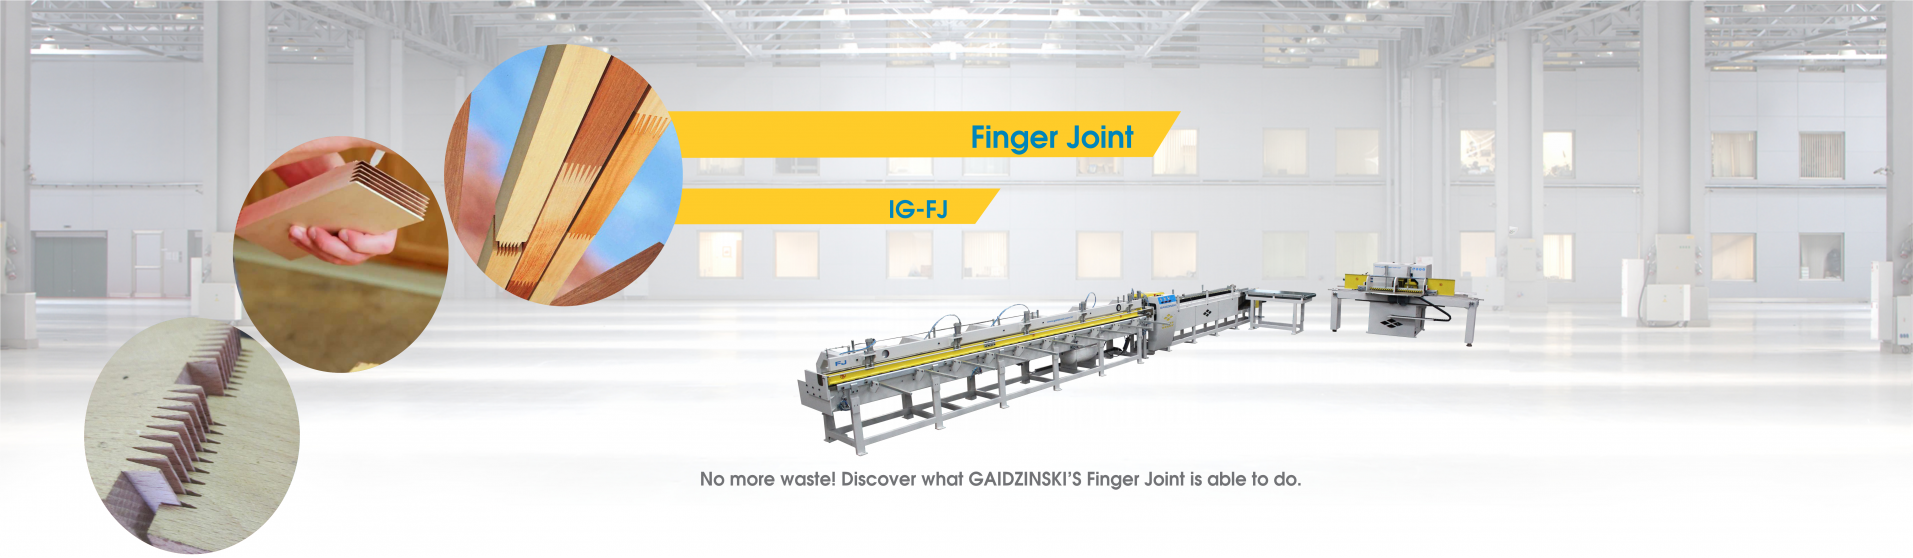 Finger Jointers